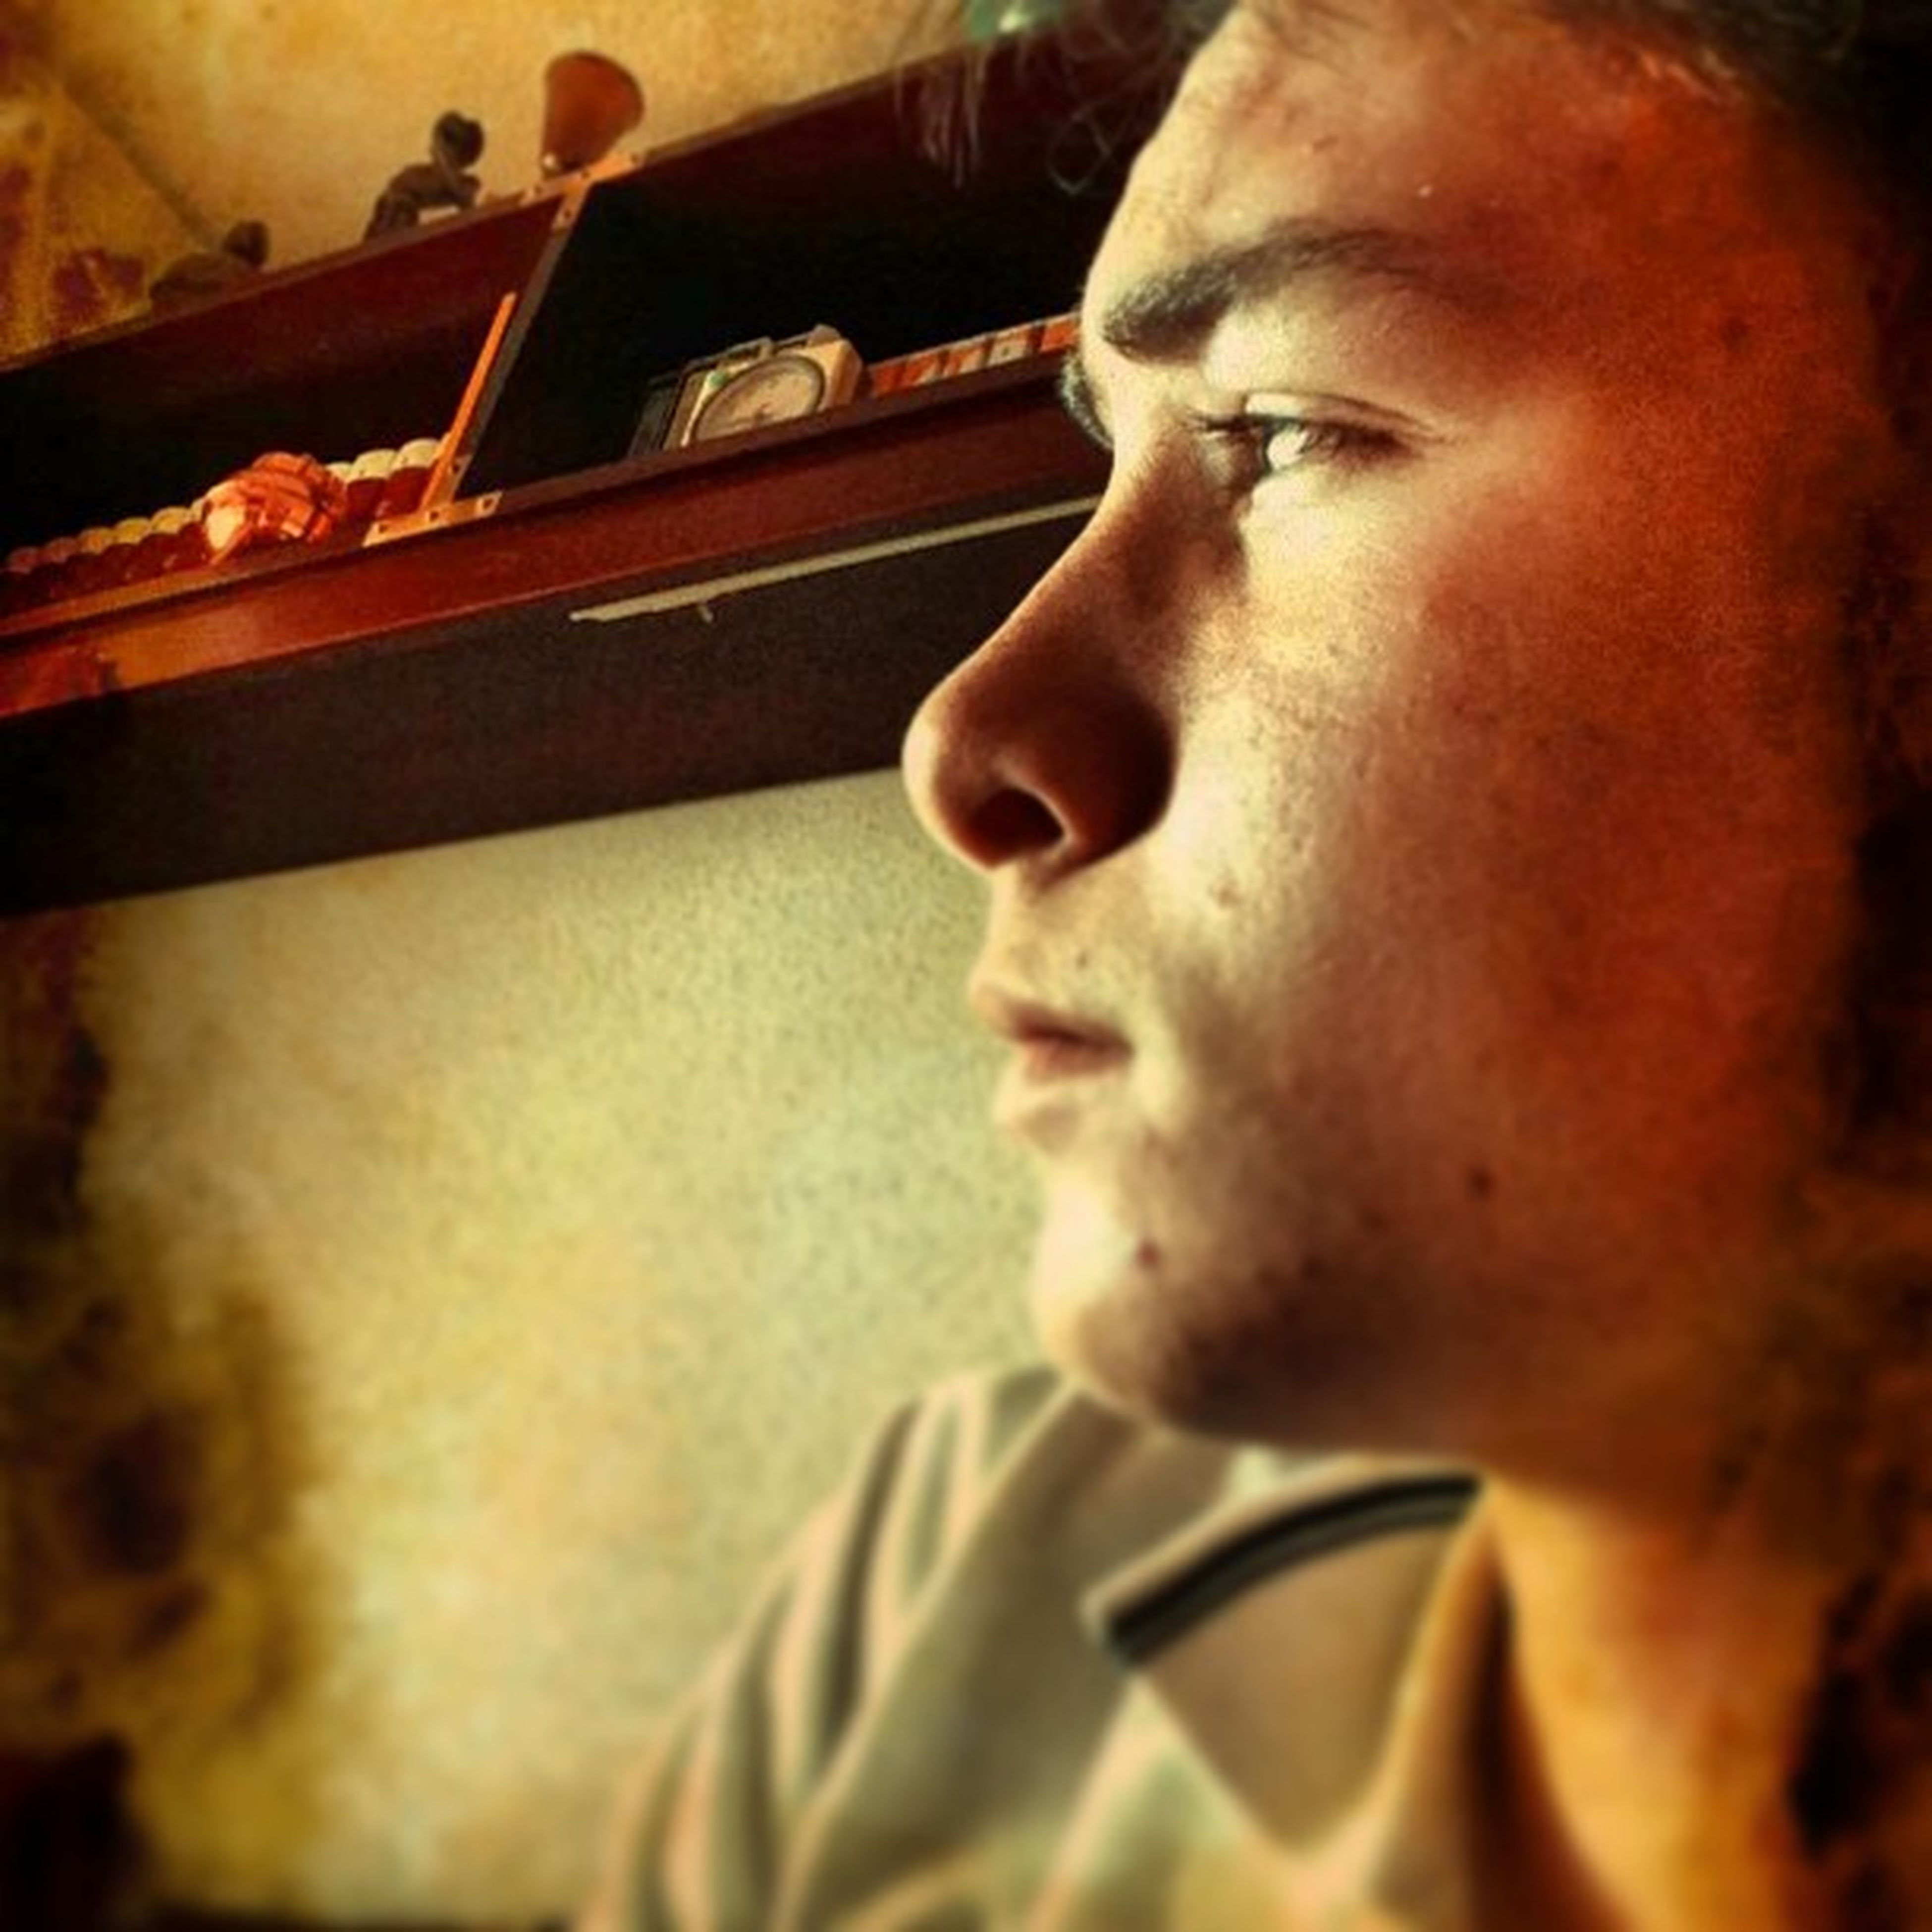 person, headshot, lifestyles, close-up, portrait, looking at camera, young adult, leisure activity, mid adult, indoors, young men, focus on foreground, head and shoulders, human face, front view, contemplation, serious